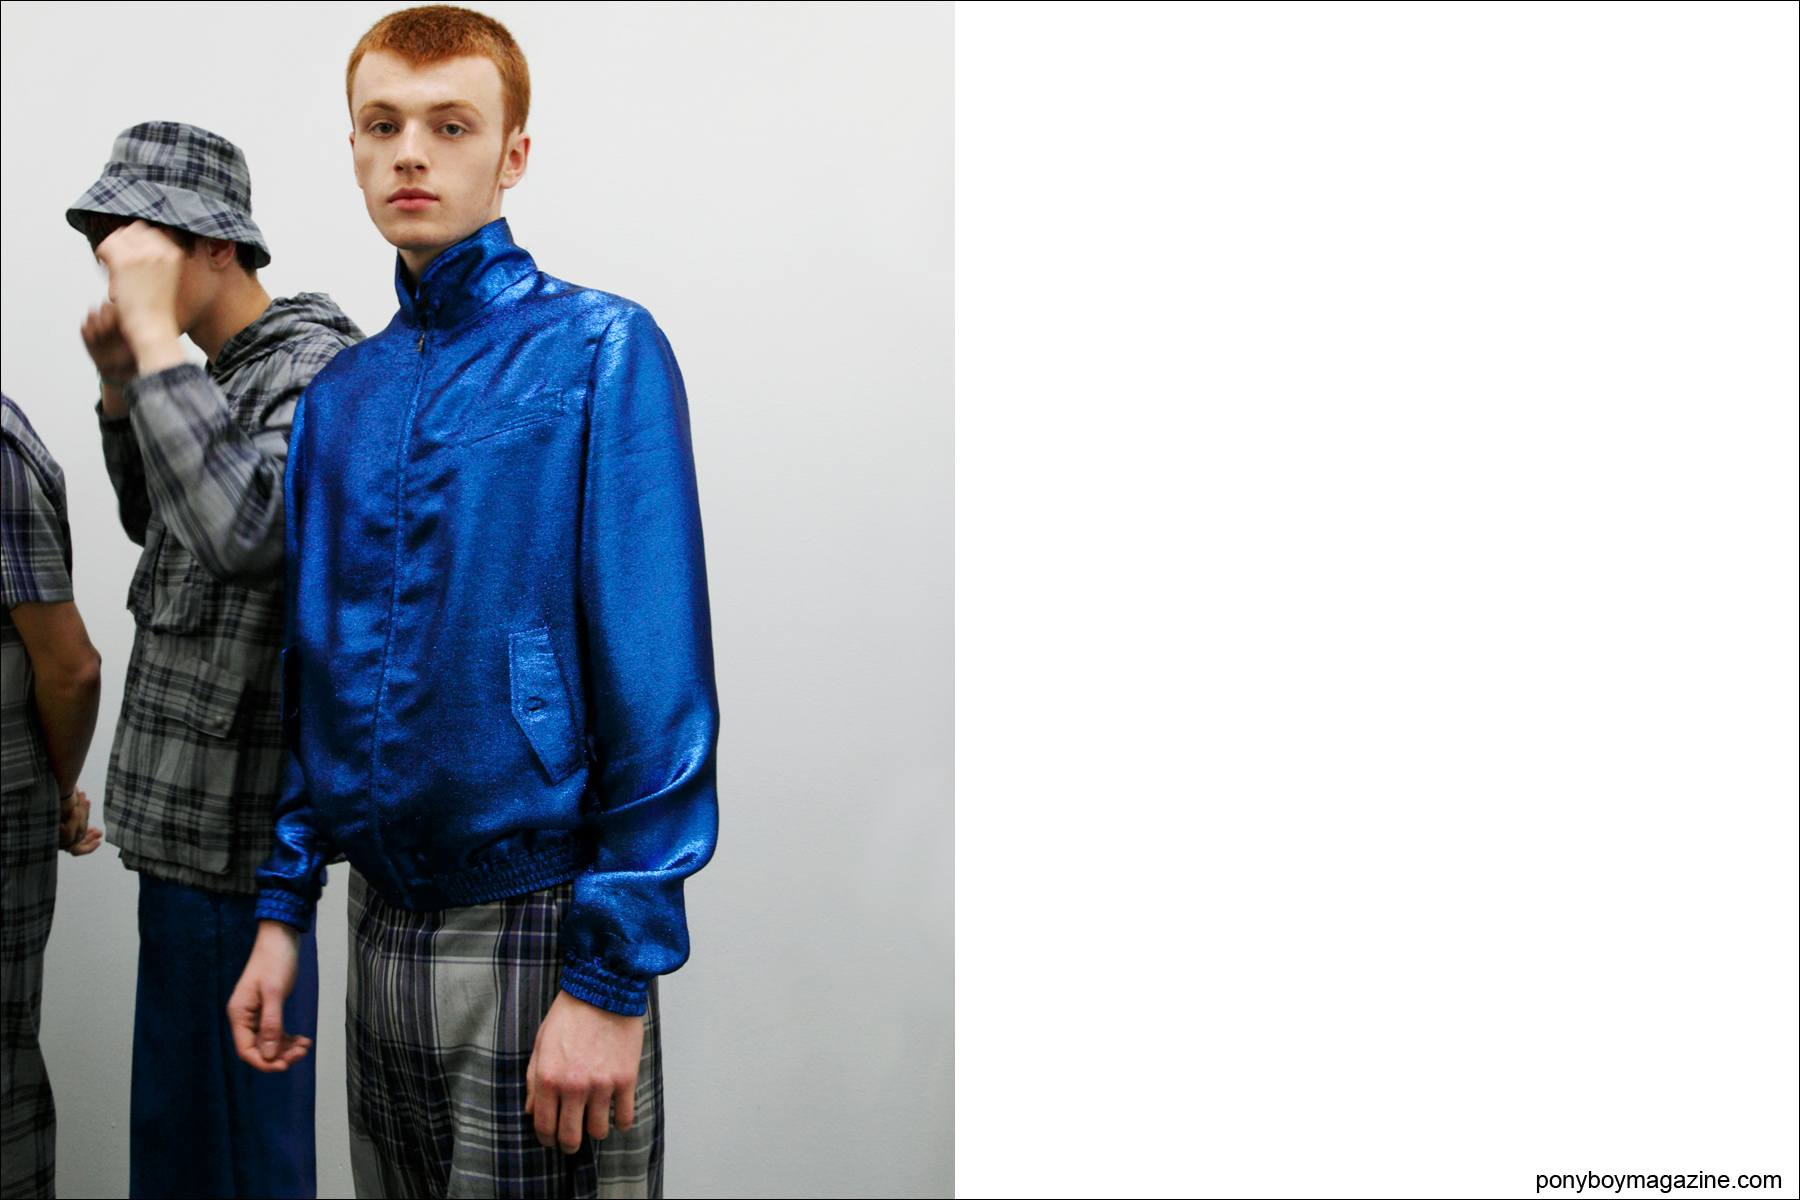 A male model photographed backstage in a metallic blue jacket designed by Duckie Brown, S/S 2015. Photograph taken at Industria Studios in New York City by Alexander Thompson for Ponyboy Magazine.